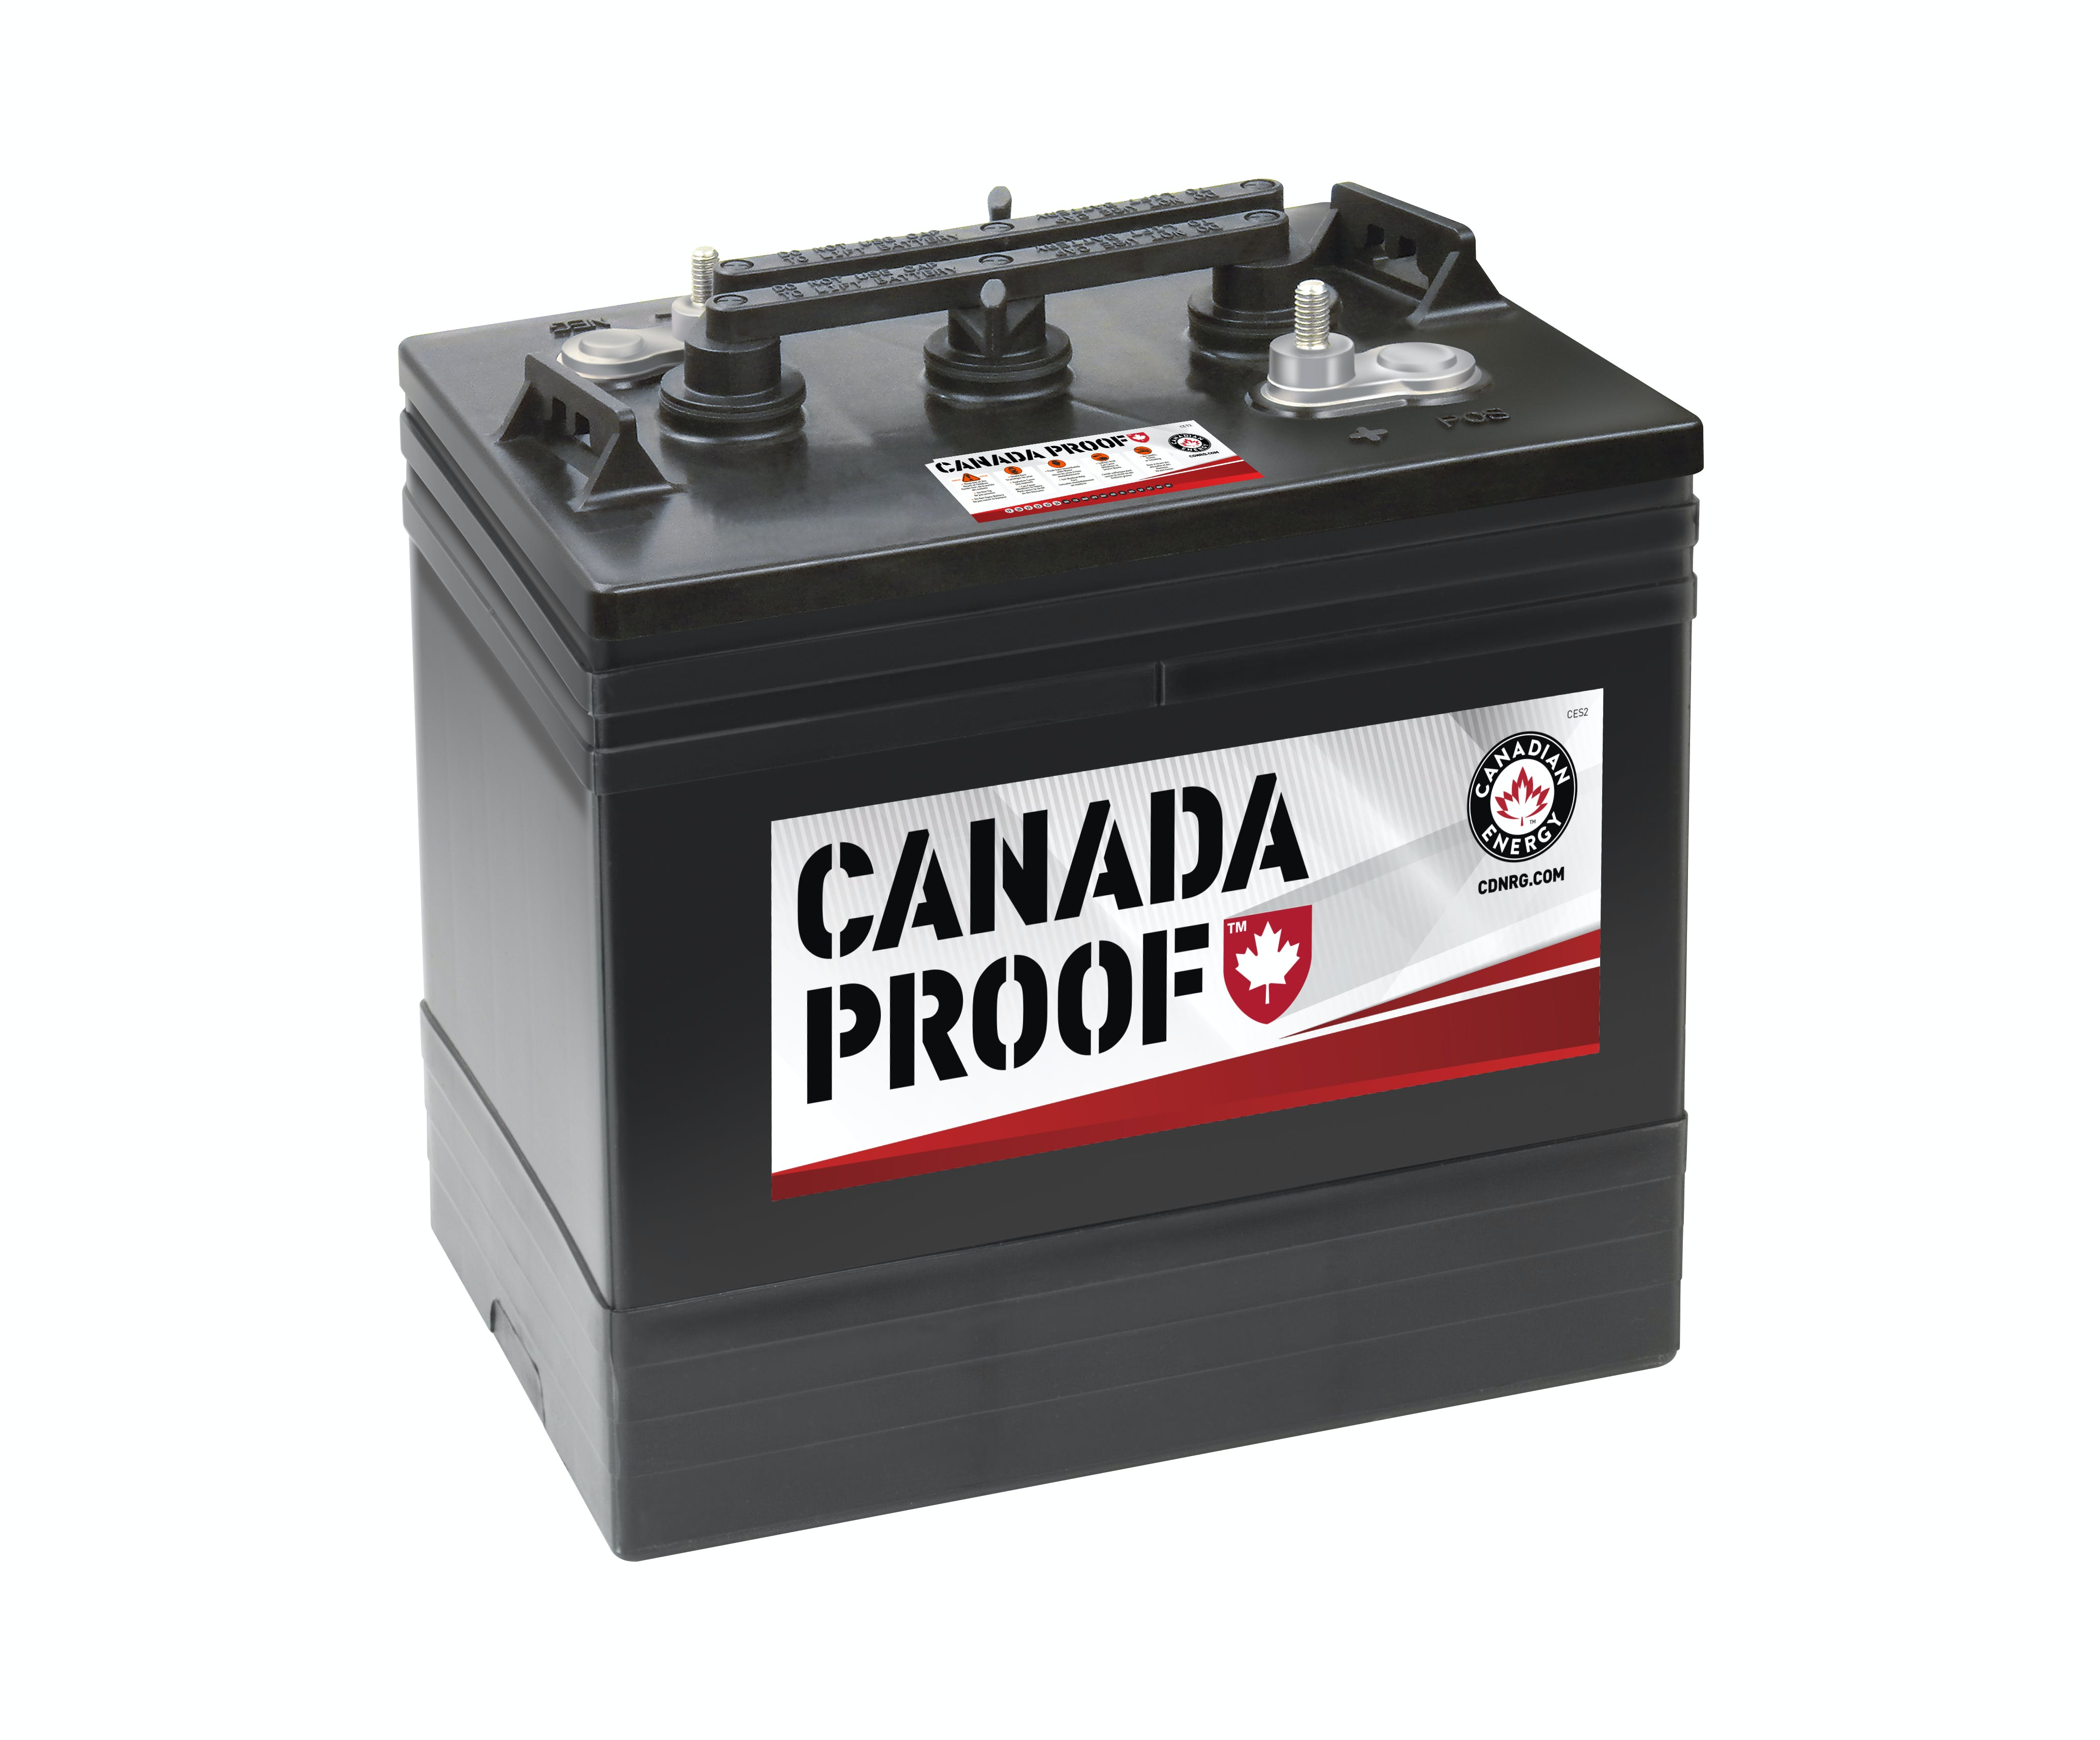 Flooded Lead Acid Deep Cycle/Traction - G2300 - Starting, Lighting & Ignition Batteries